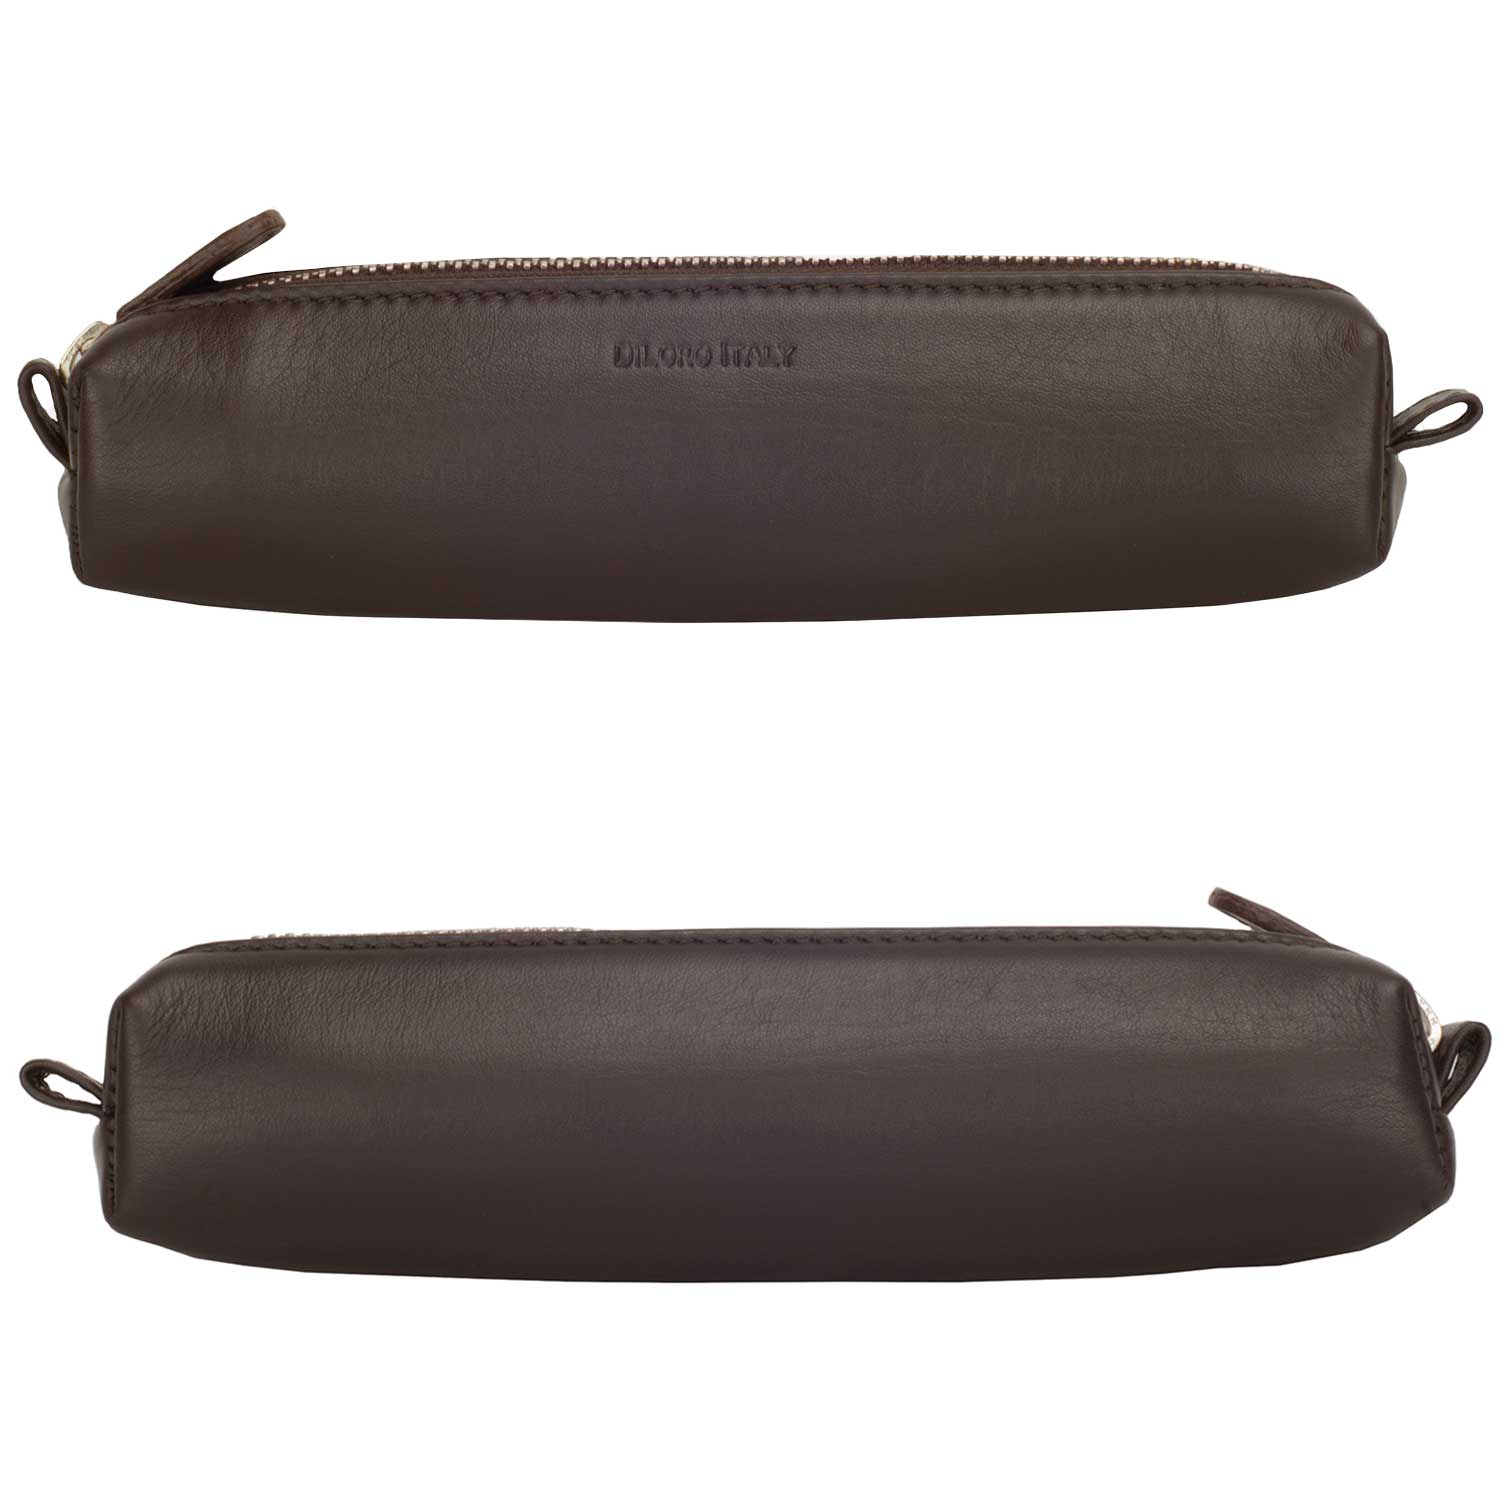 Multi-Purpose Zippered Leather Pen Pencil Case Pouch in Various Colors - Dark Brown (front and back)